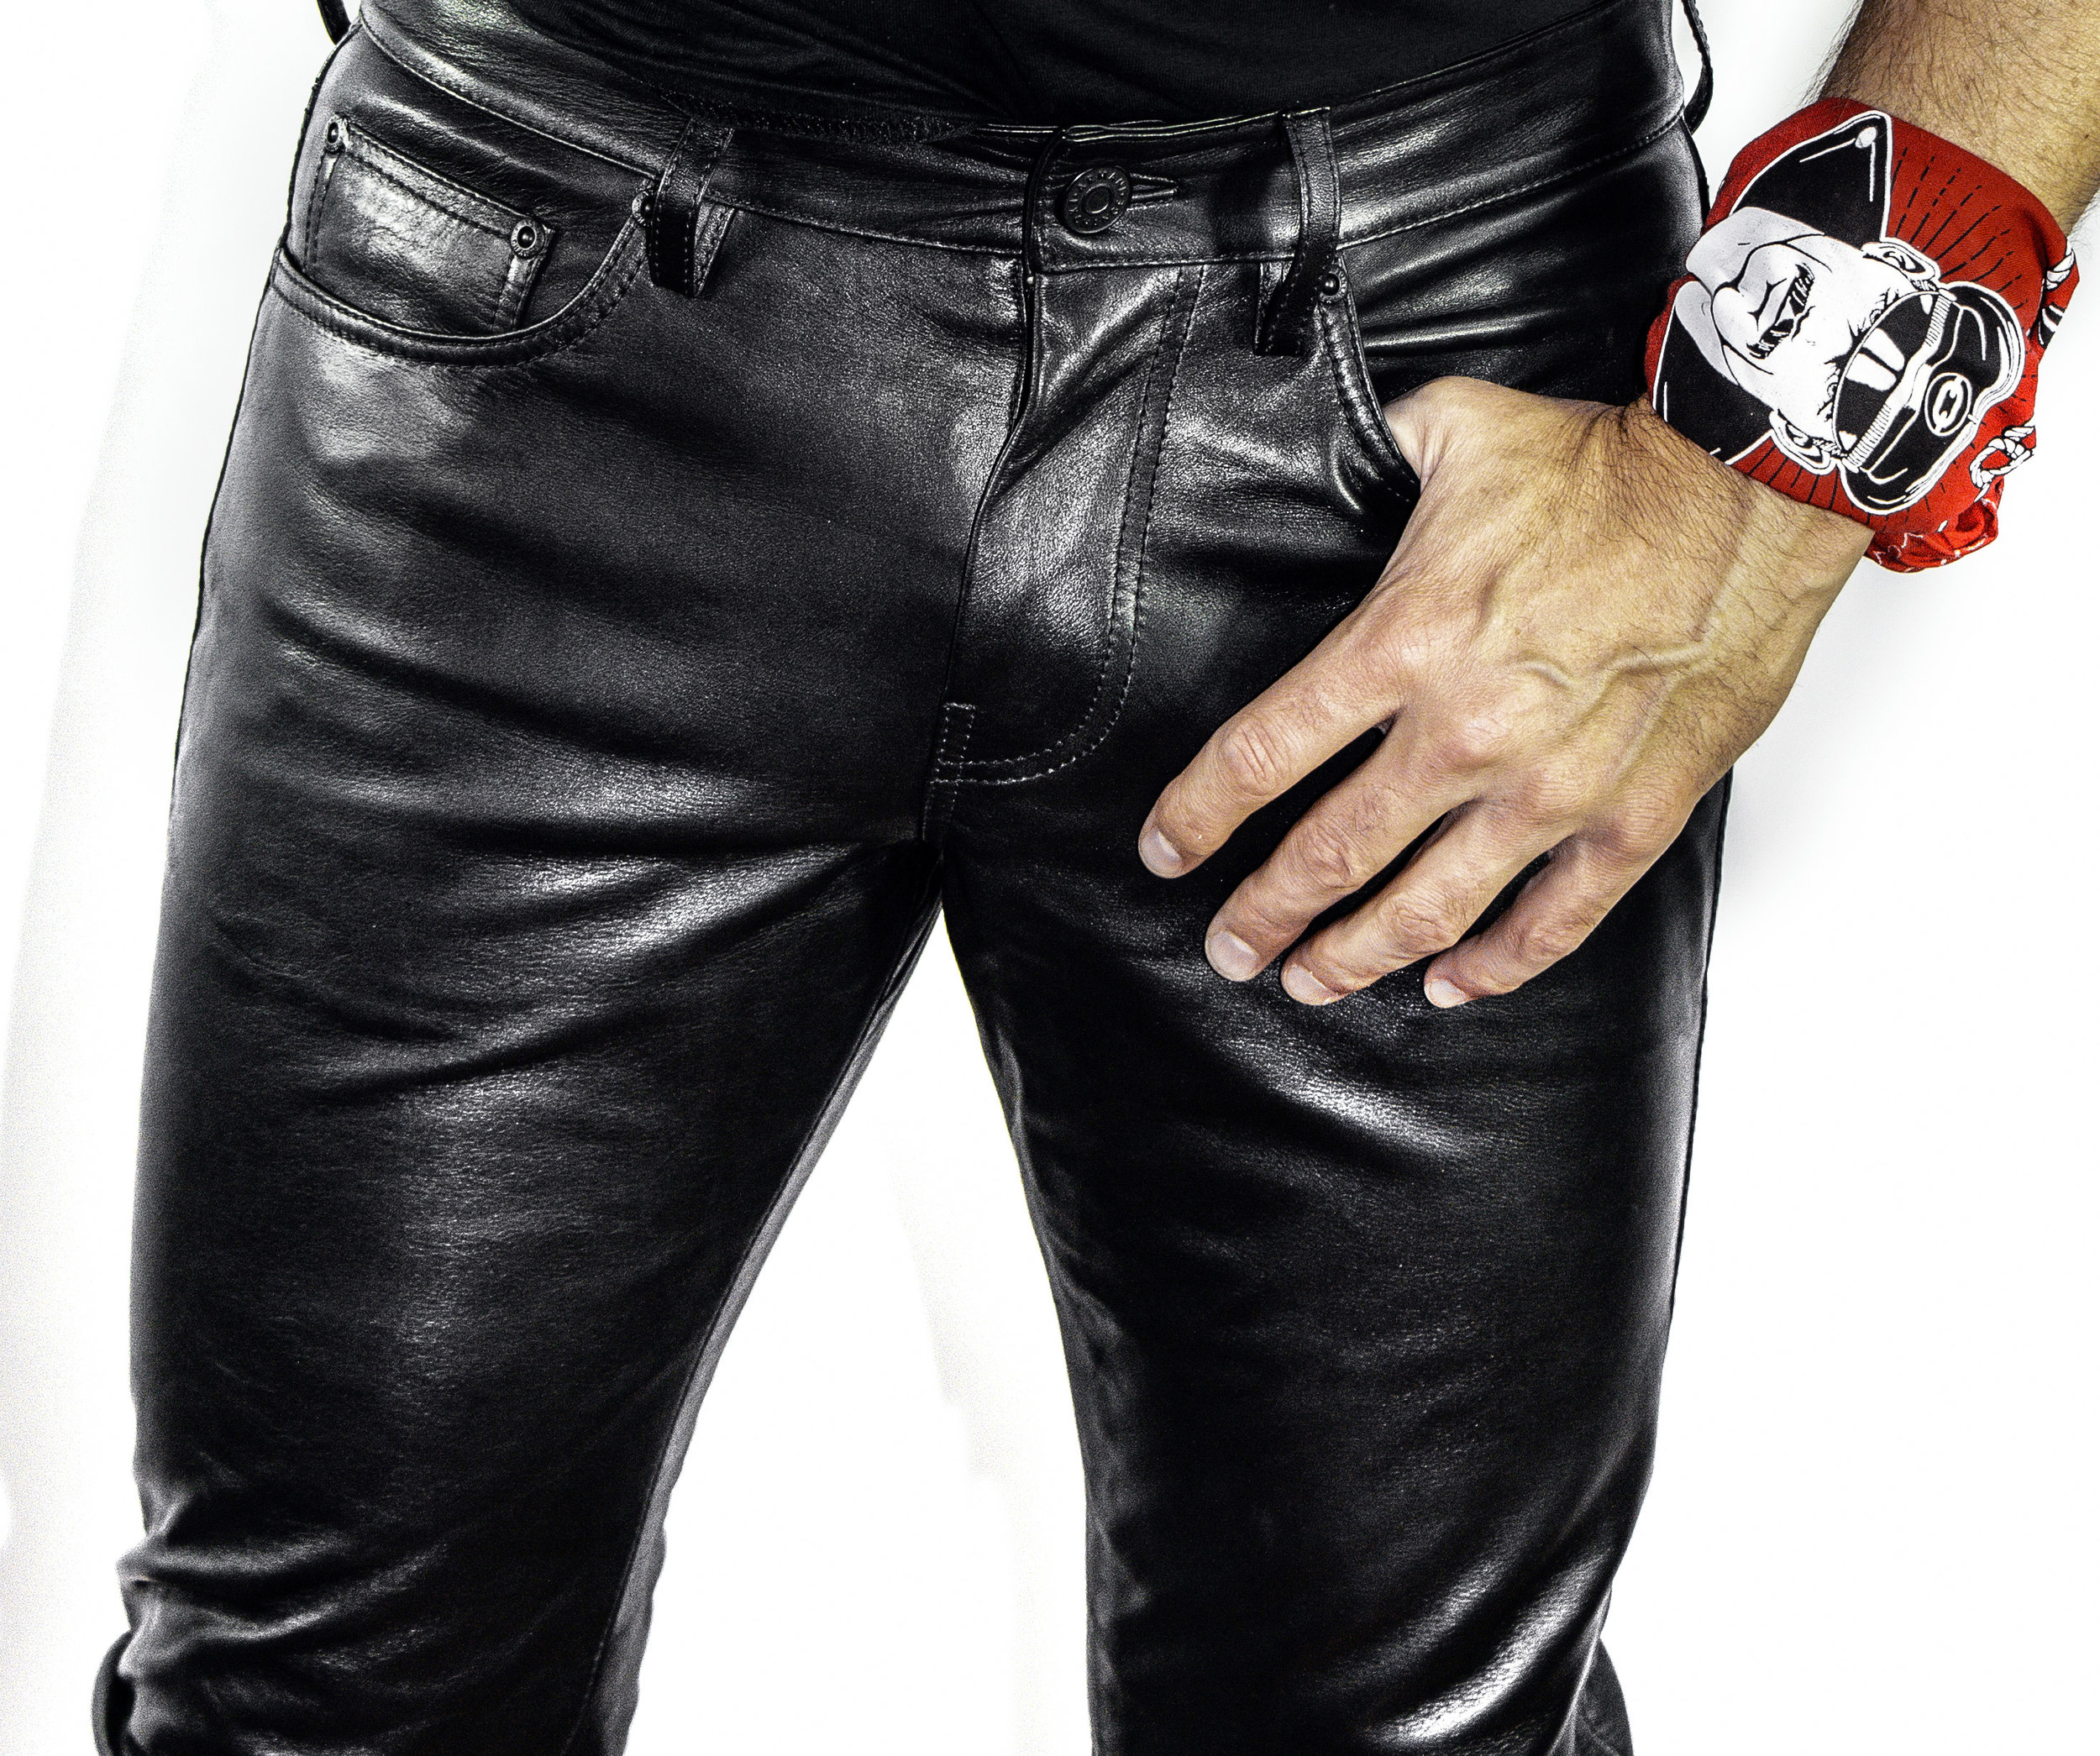 TOM OF FINLAND LEATHER PANTS.jpg